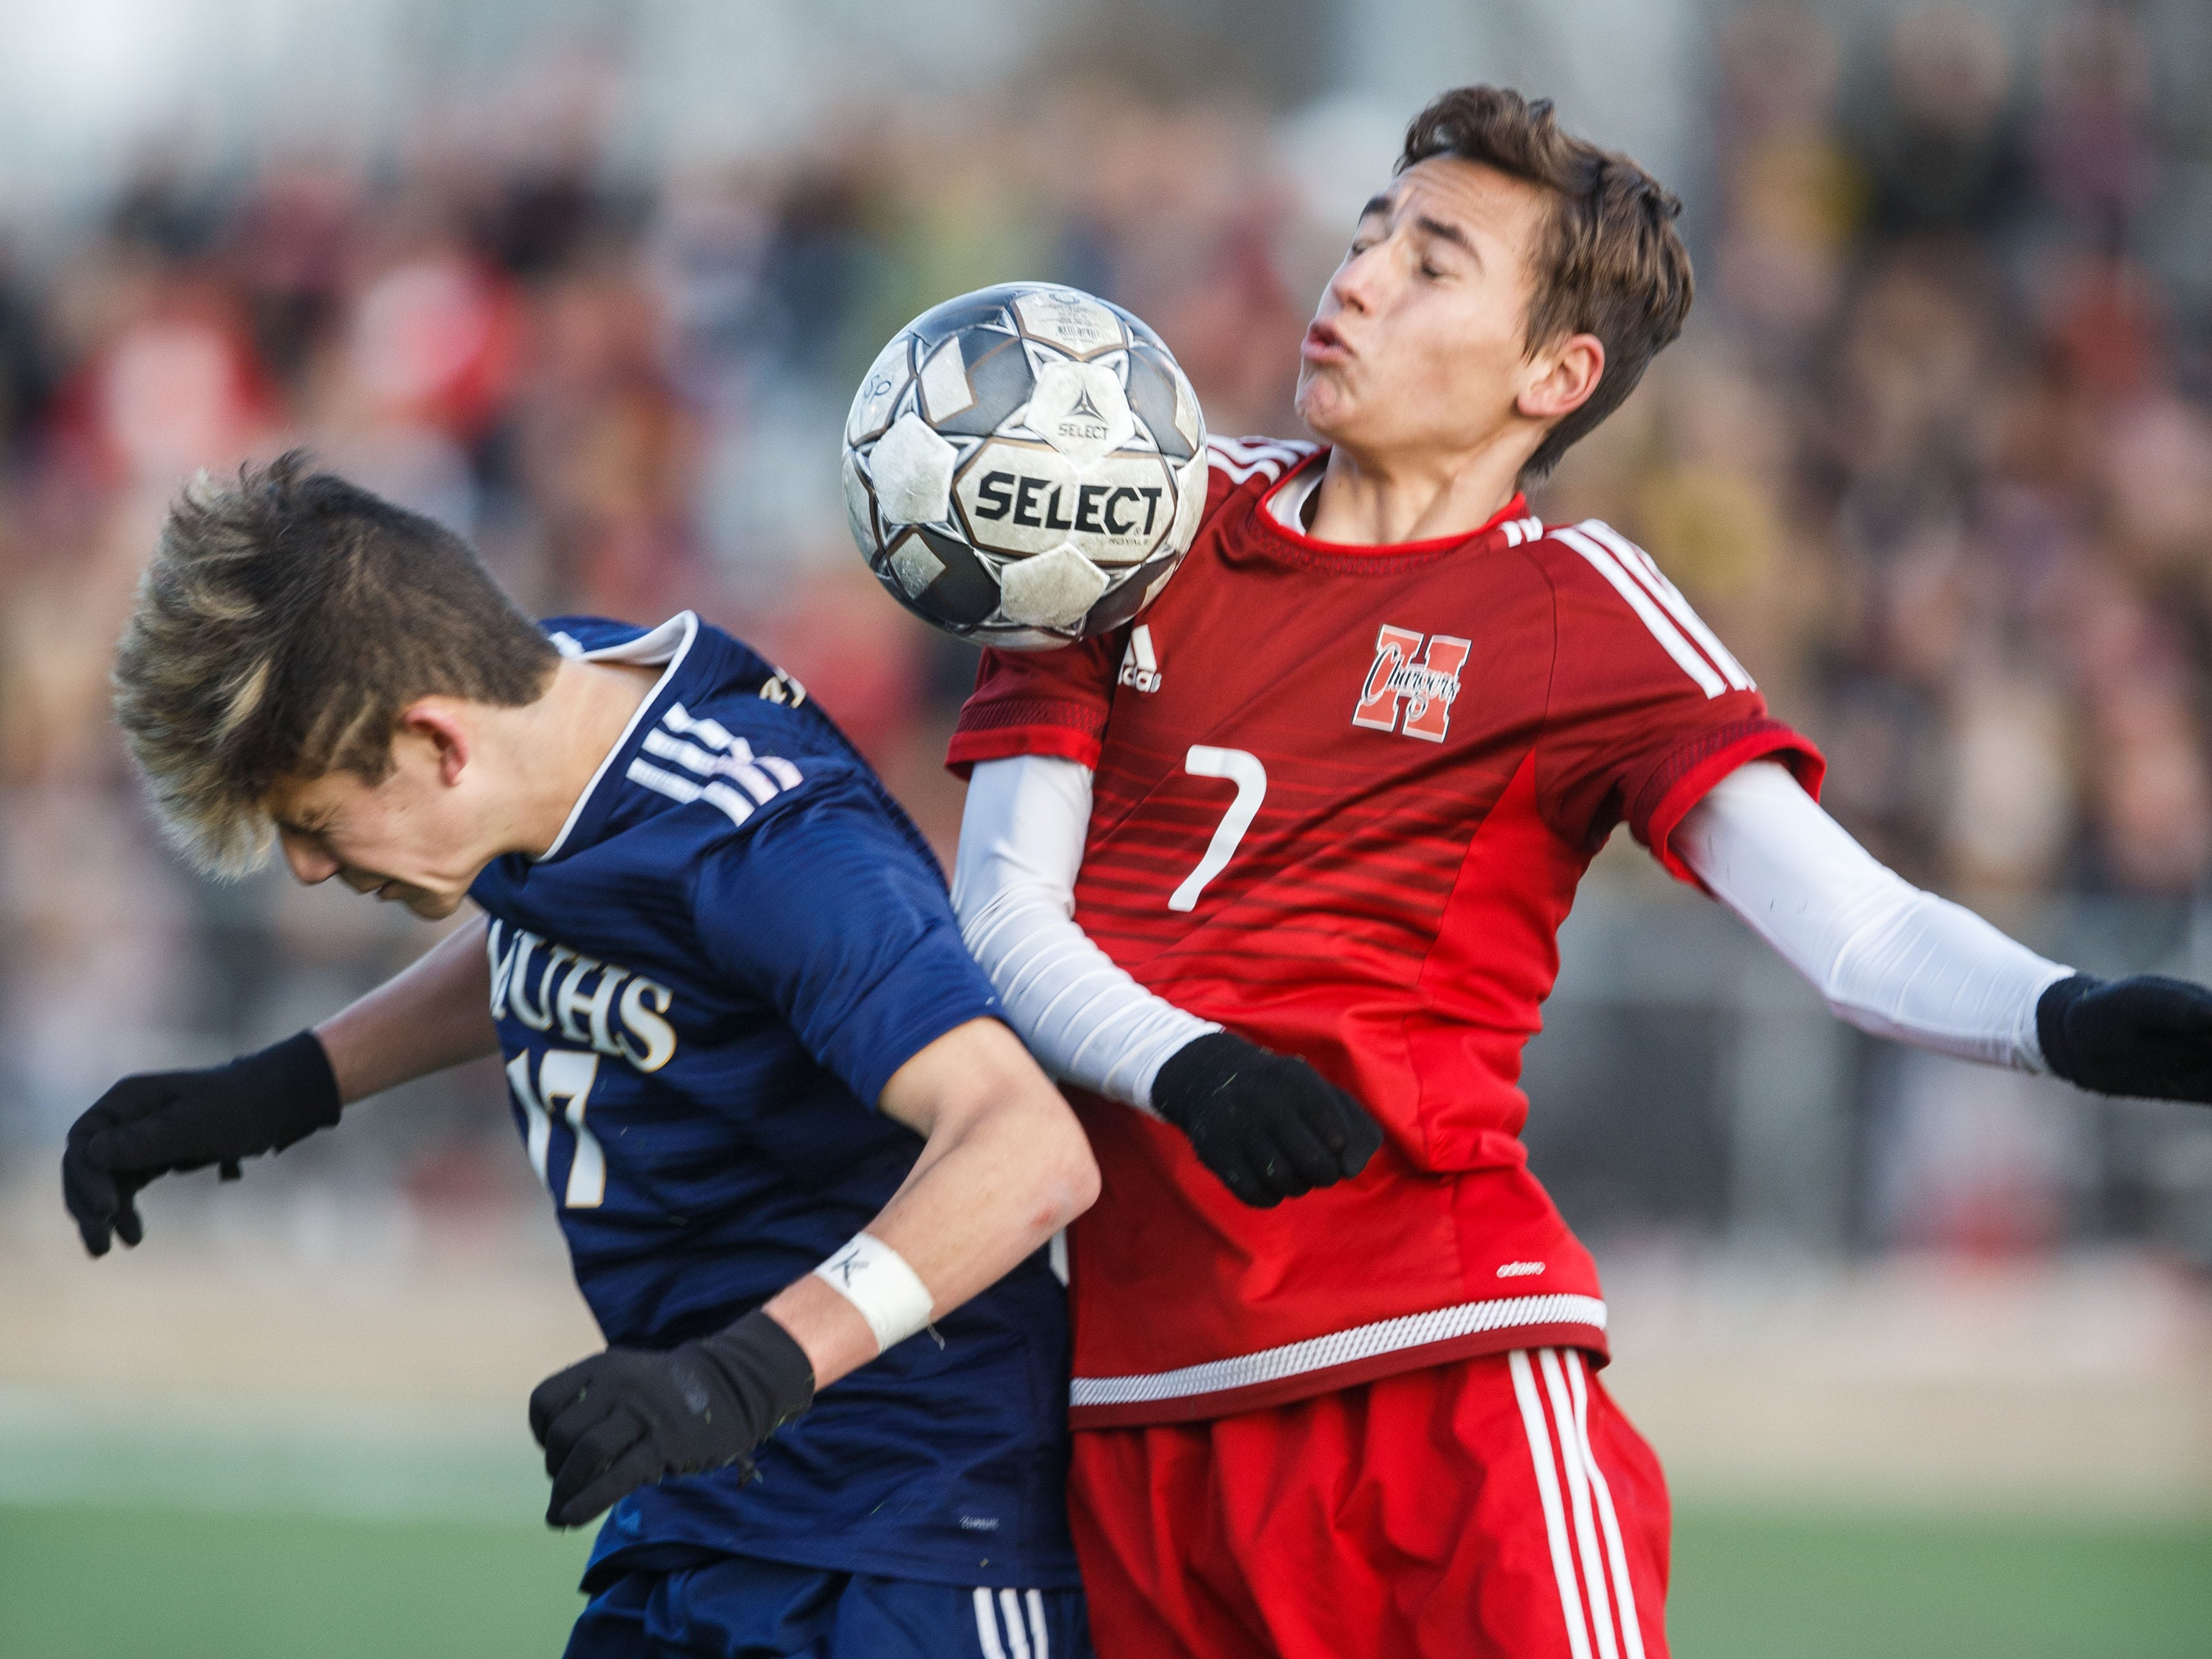 Sussex Hamilton senior Trevor Millonzi (7) battles Marquette's Gabe Anguil  for a header during the WIAA Division 1 state soccer title match on Saturday at Uihlein Soccer Park in Milwaukee.